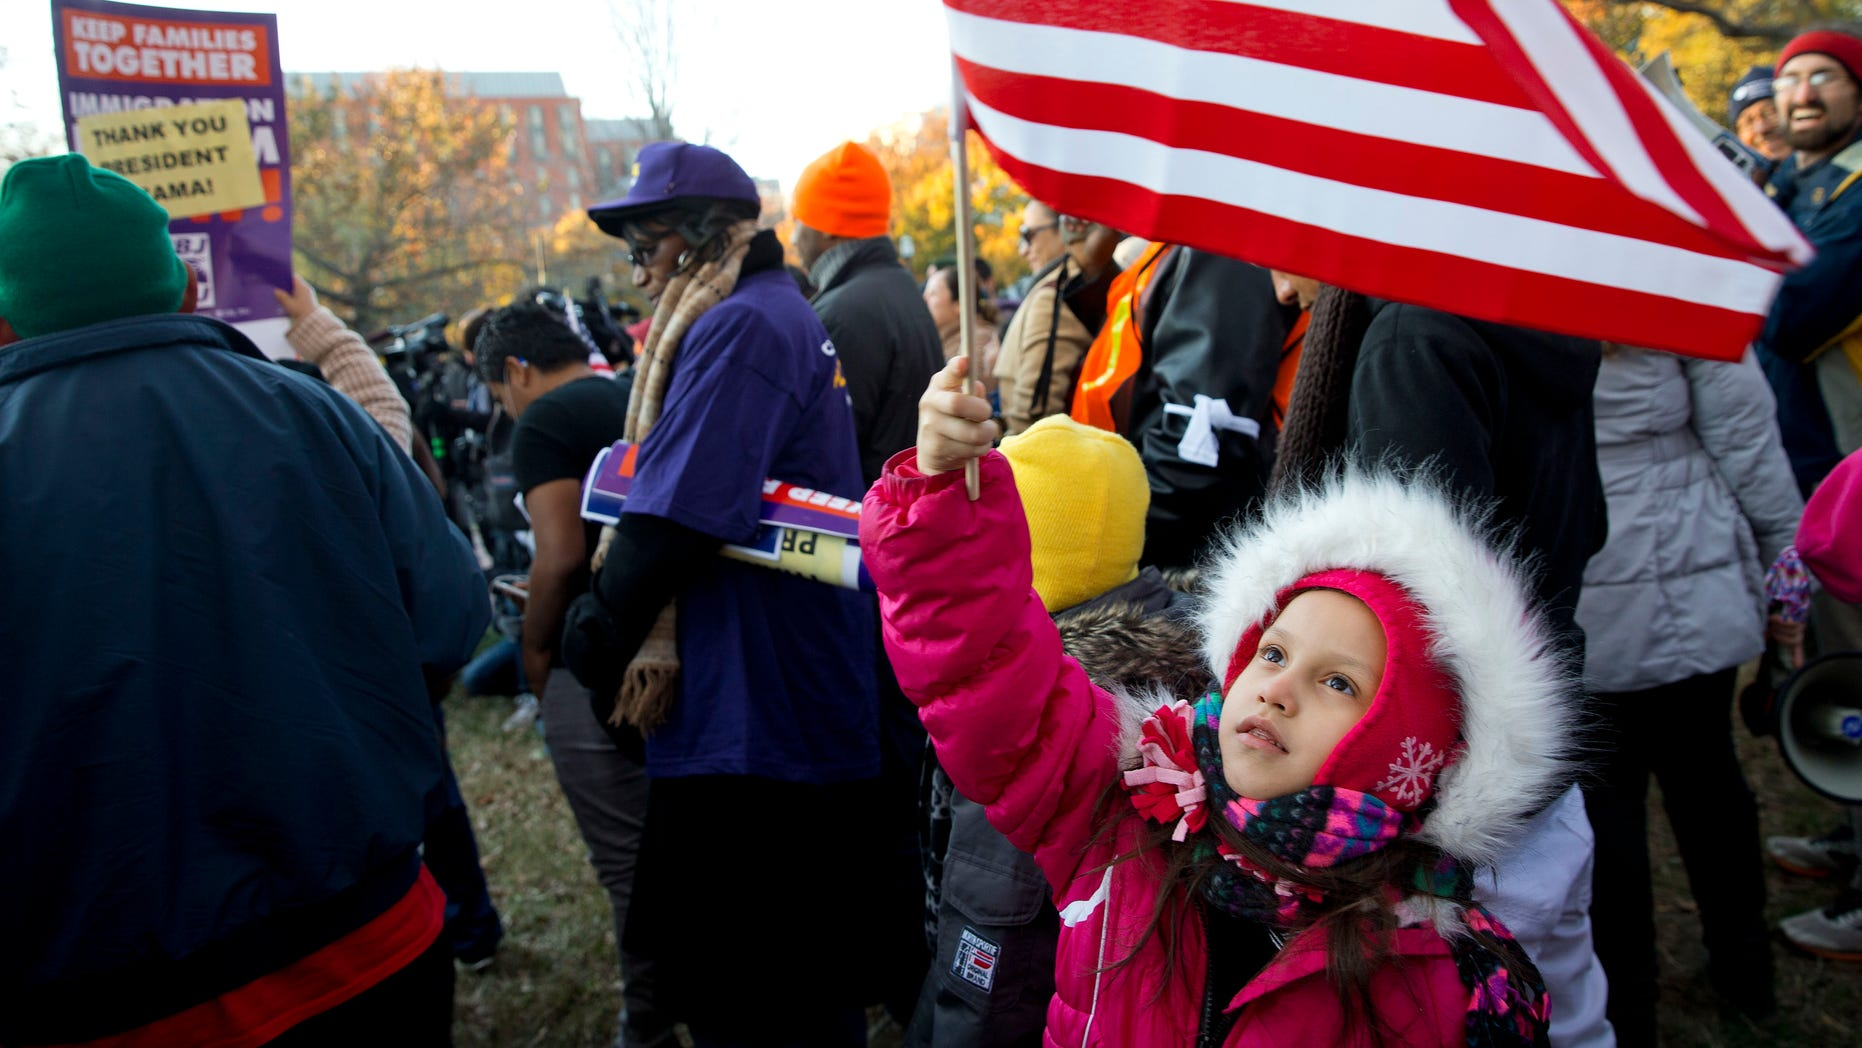 Joselyn Vargas, 7, of Hyattsville, Md., waves a U.S. flag during a rally in Lafayette Park across from the White House in Washington, Friday, Nov. 21, 2014, thanking President Obama for his executive action on illegal immigratio. Vargas' parents are eligible under the executive action as the girl and her younger sister are U.S. citizens. (AP Photo/Jacquelyn Martin)